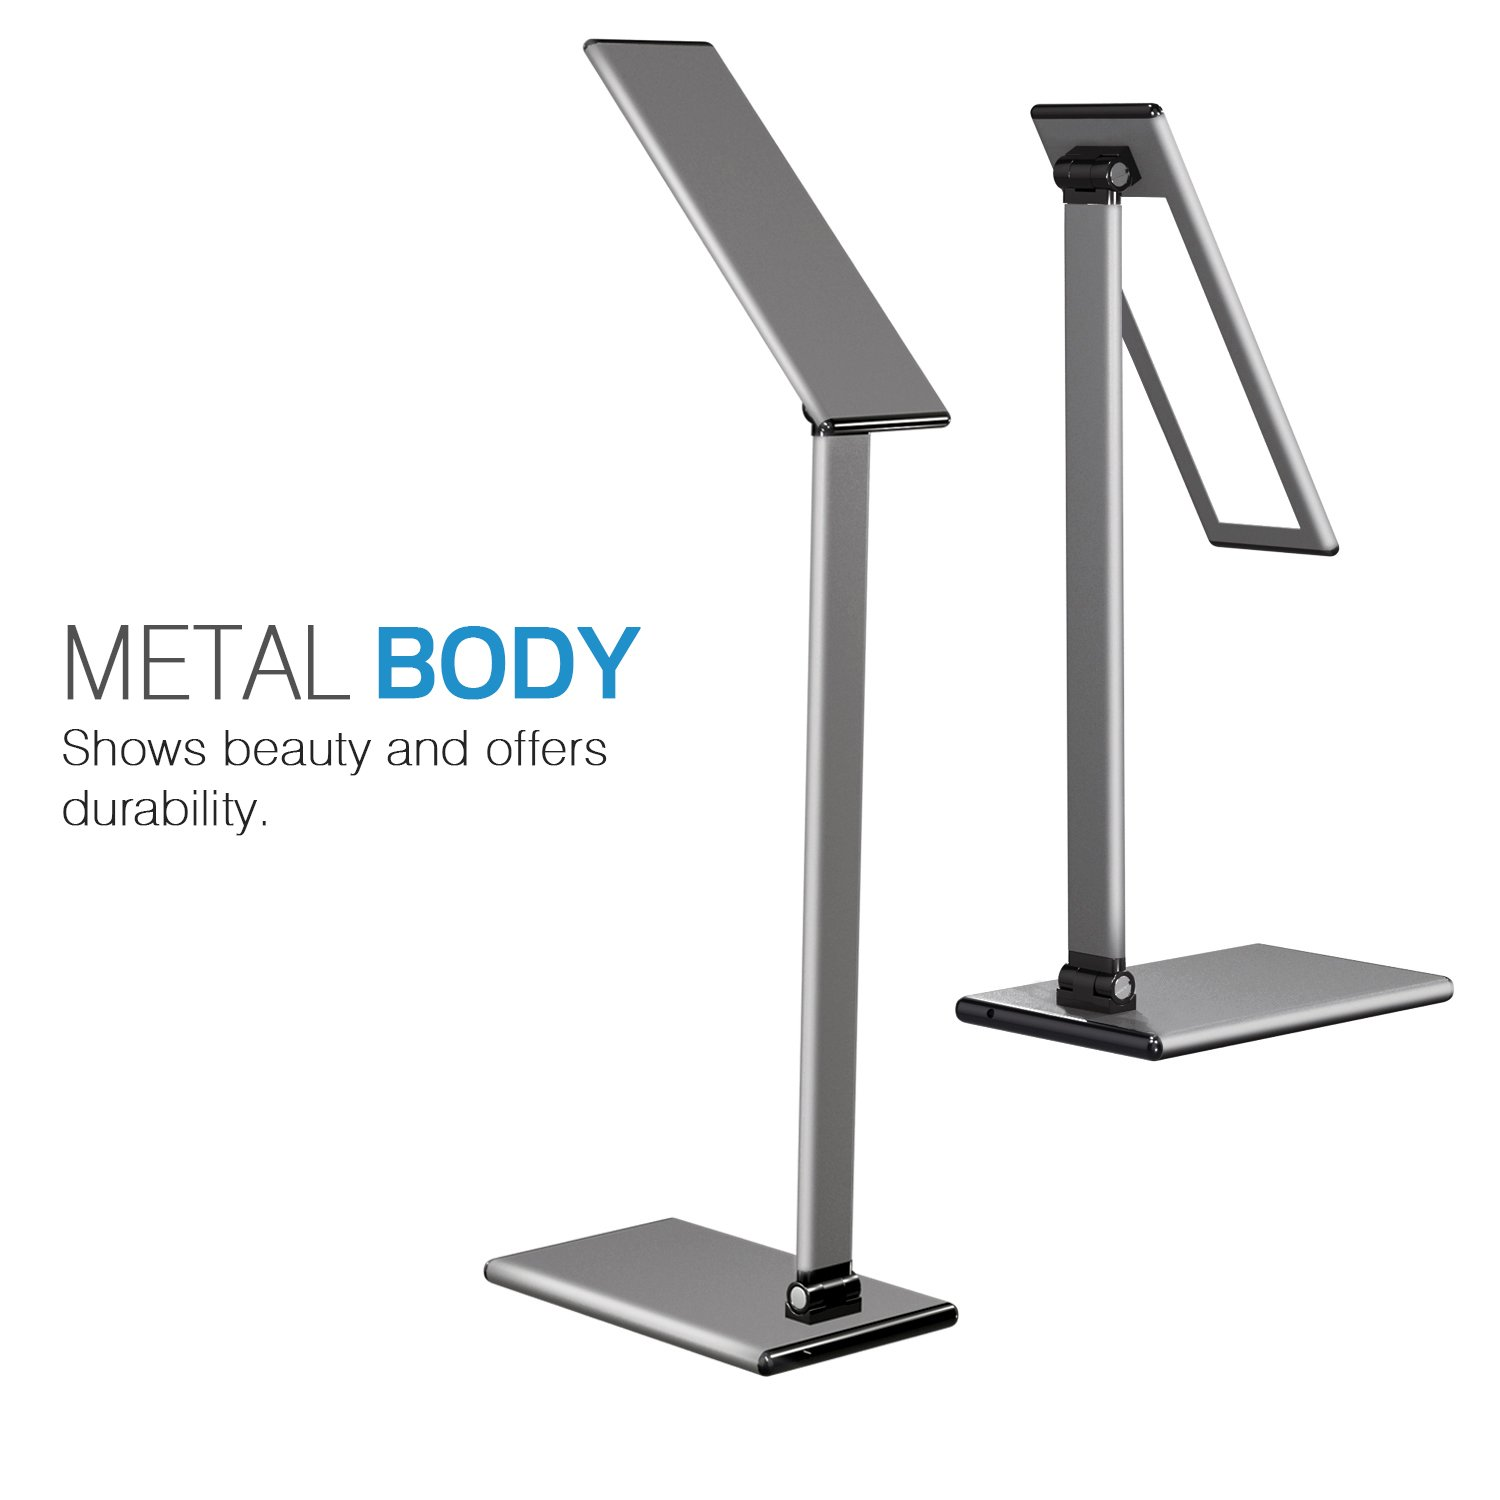 MoKo LED Desk Lamp, 8W Eye-Care Smart Touch Control Table Lamps with Rugged Aluminum Alloy Body, Stepless Adjusted Color Temperature/Brightness Level, Rotatable Arm/Head, Memory Function - Dark Gray by MoKo (Image #3)